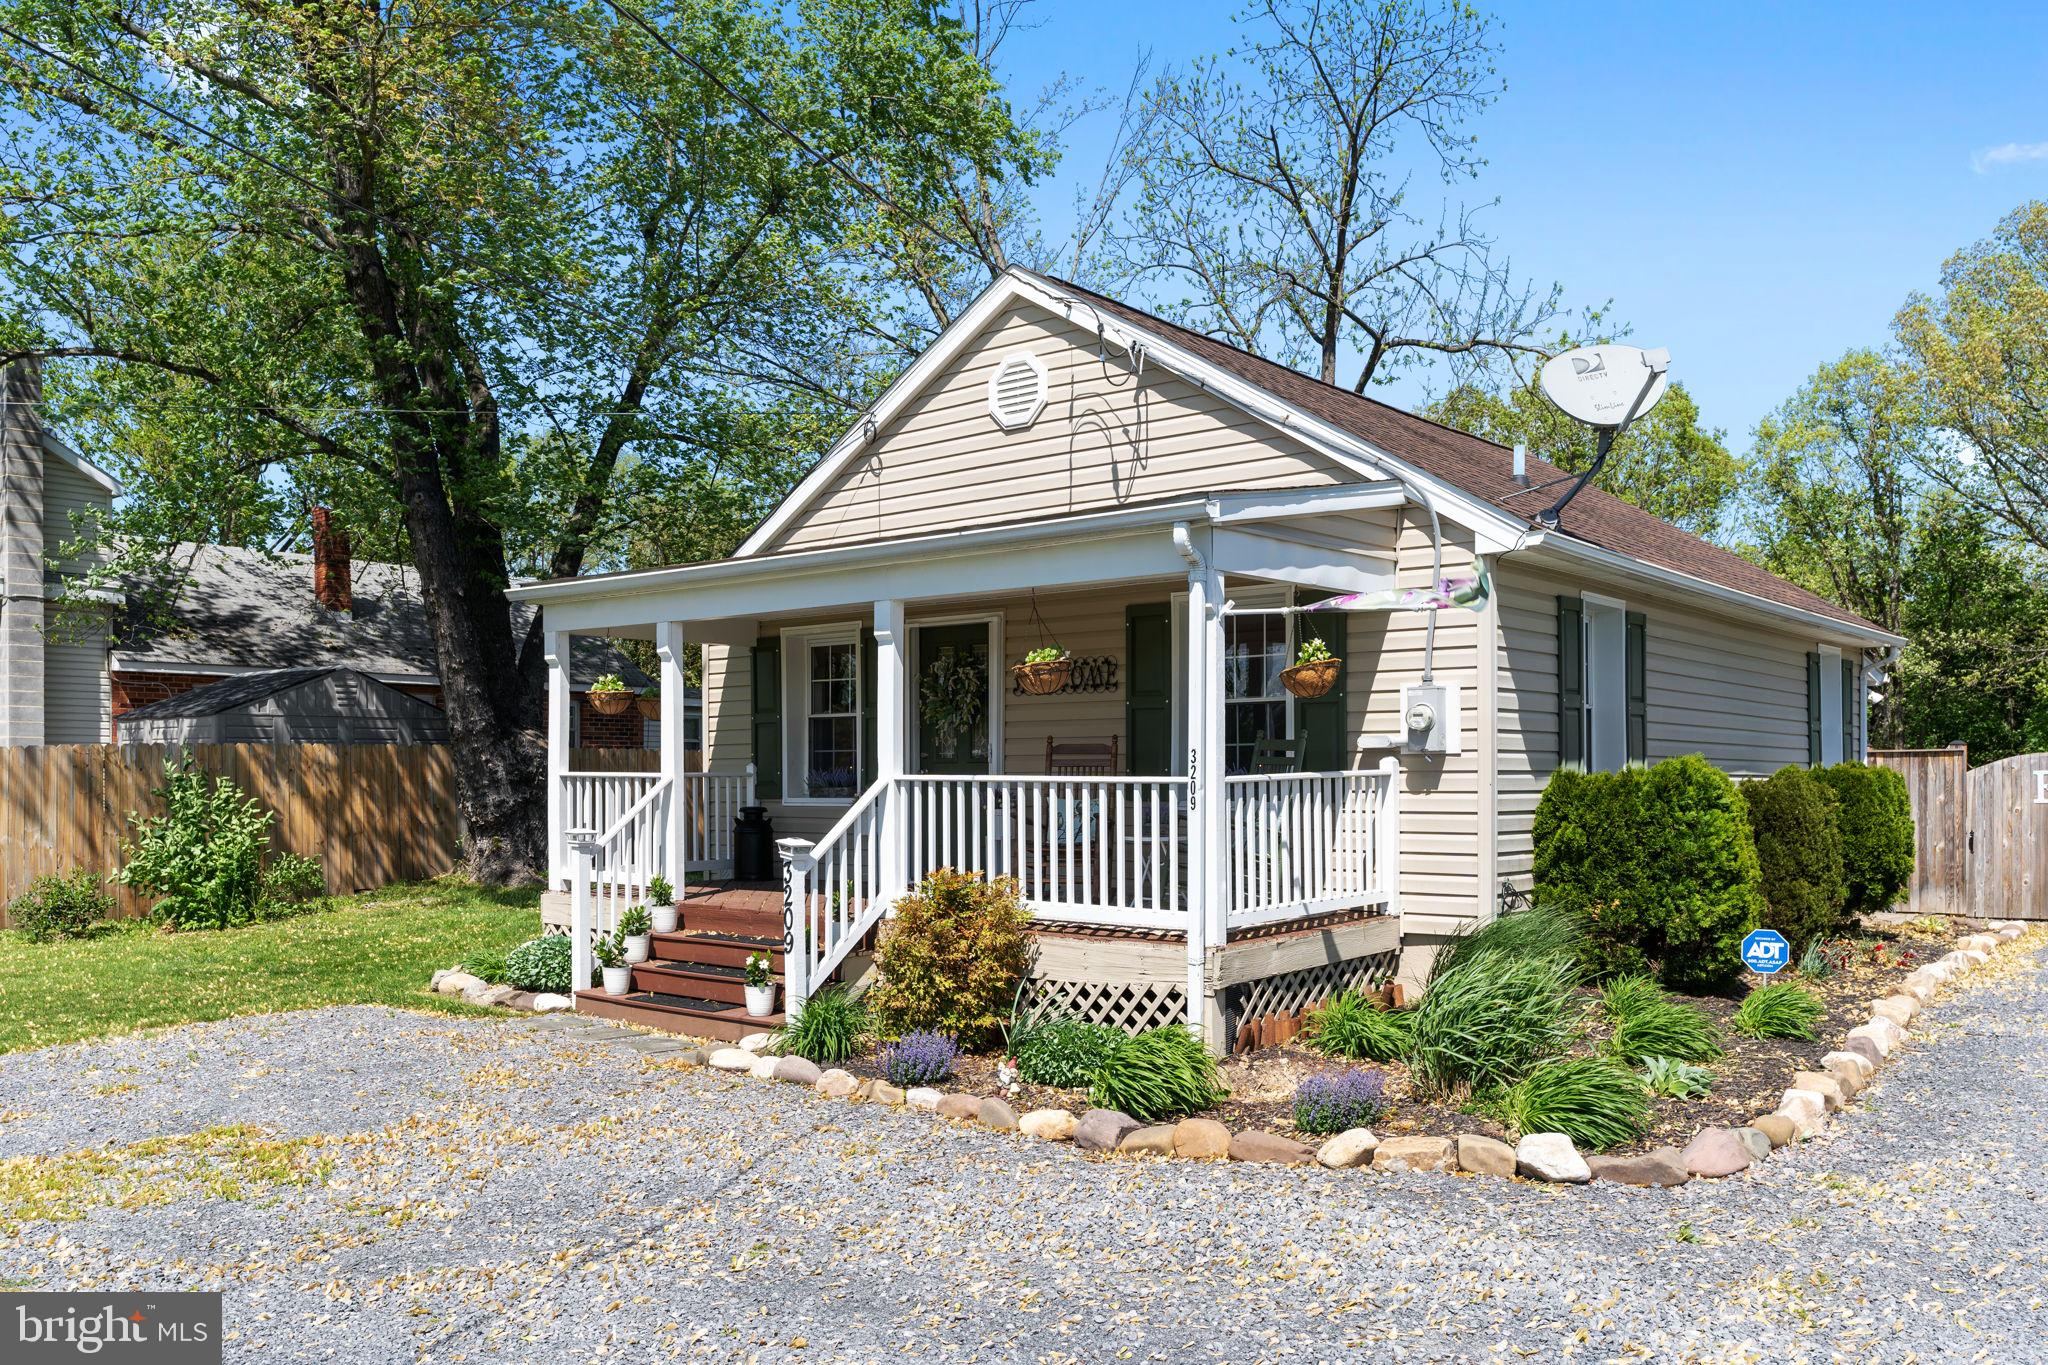 Adorable cottage on a fantastic lot!  This sweet home is perfect for a starter home, a small family,